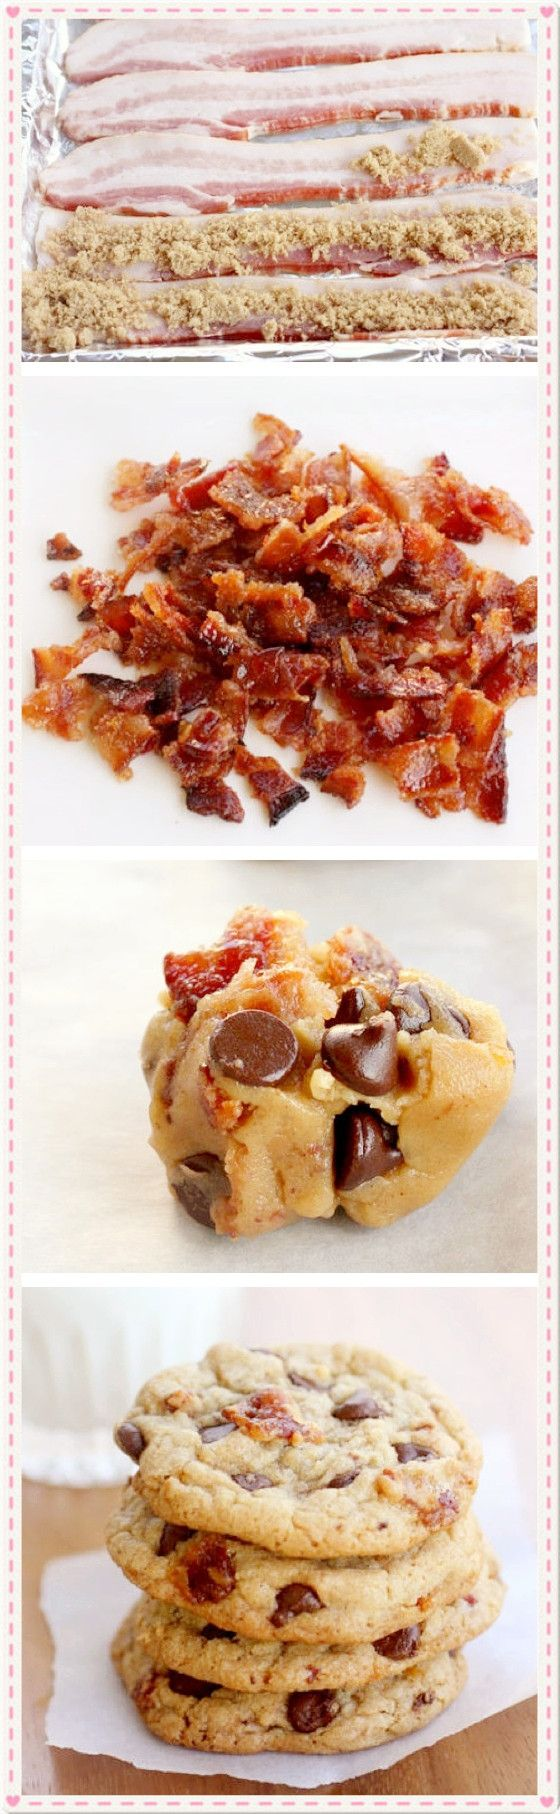 Candied Bacon Chocolate Chip Cookies - Joybx